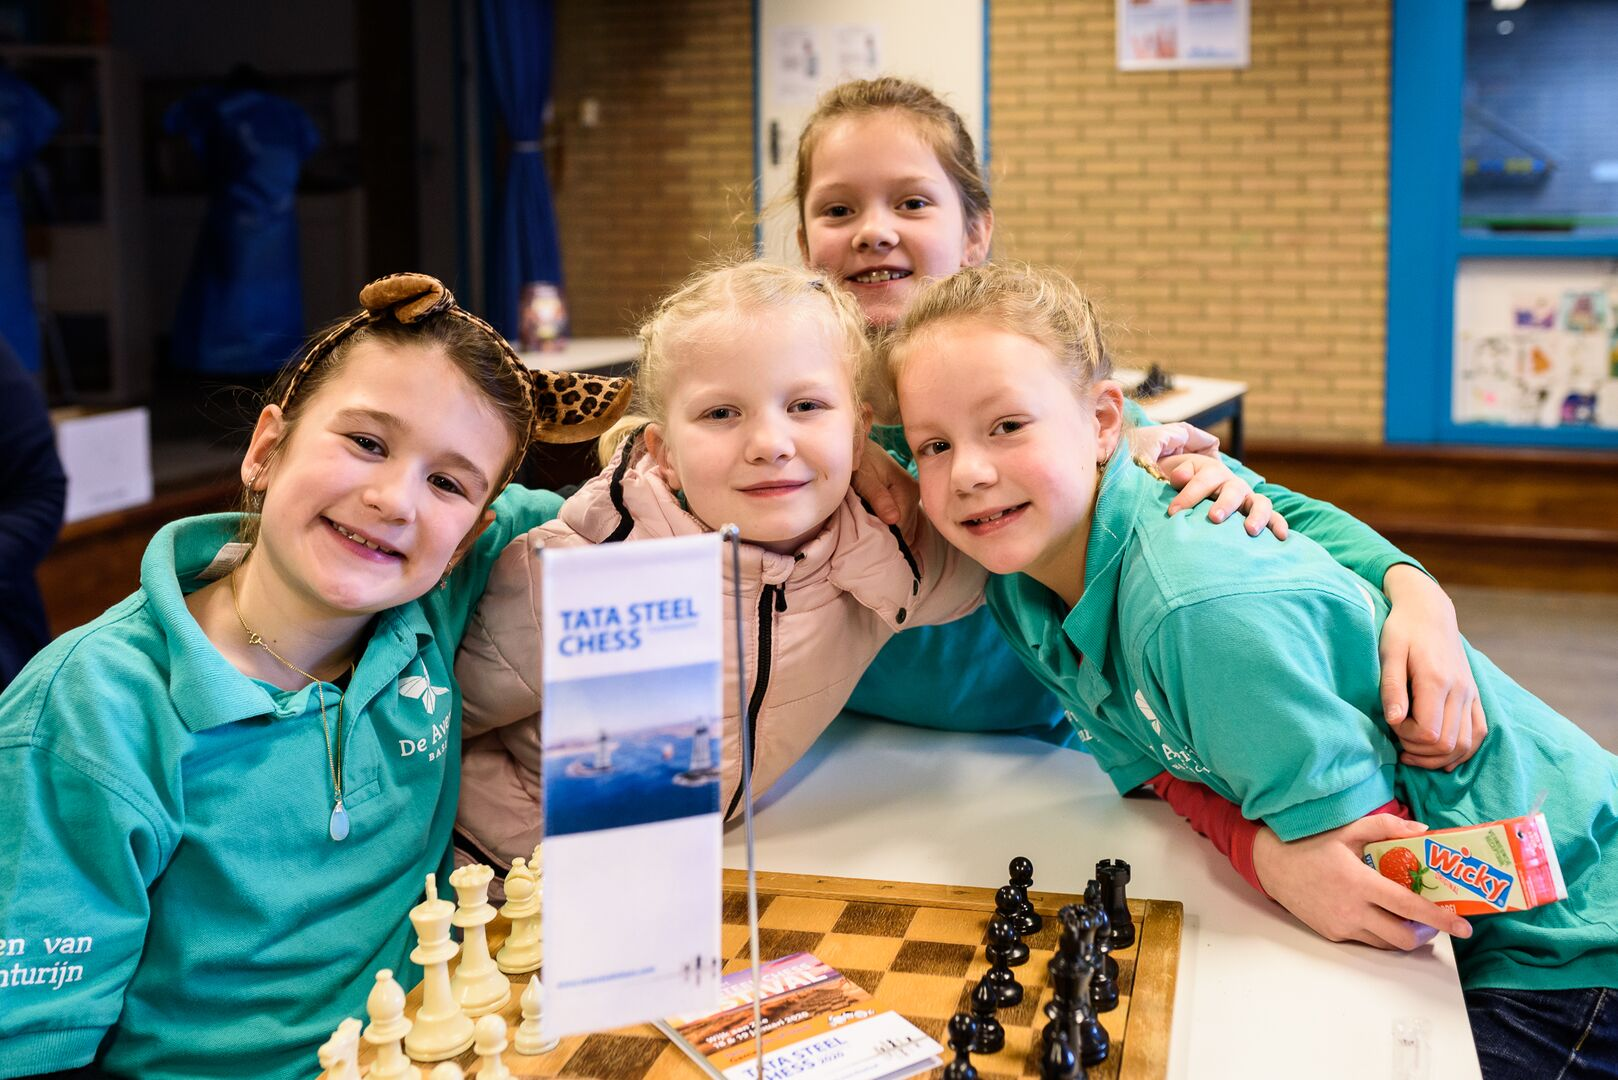 Tata Steel Kids weekend 2020